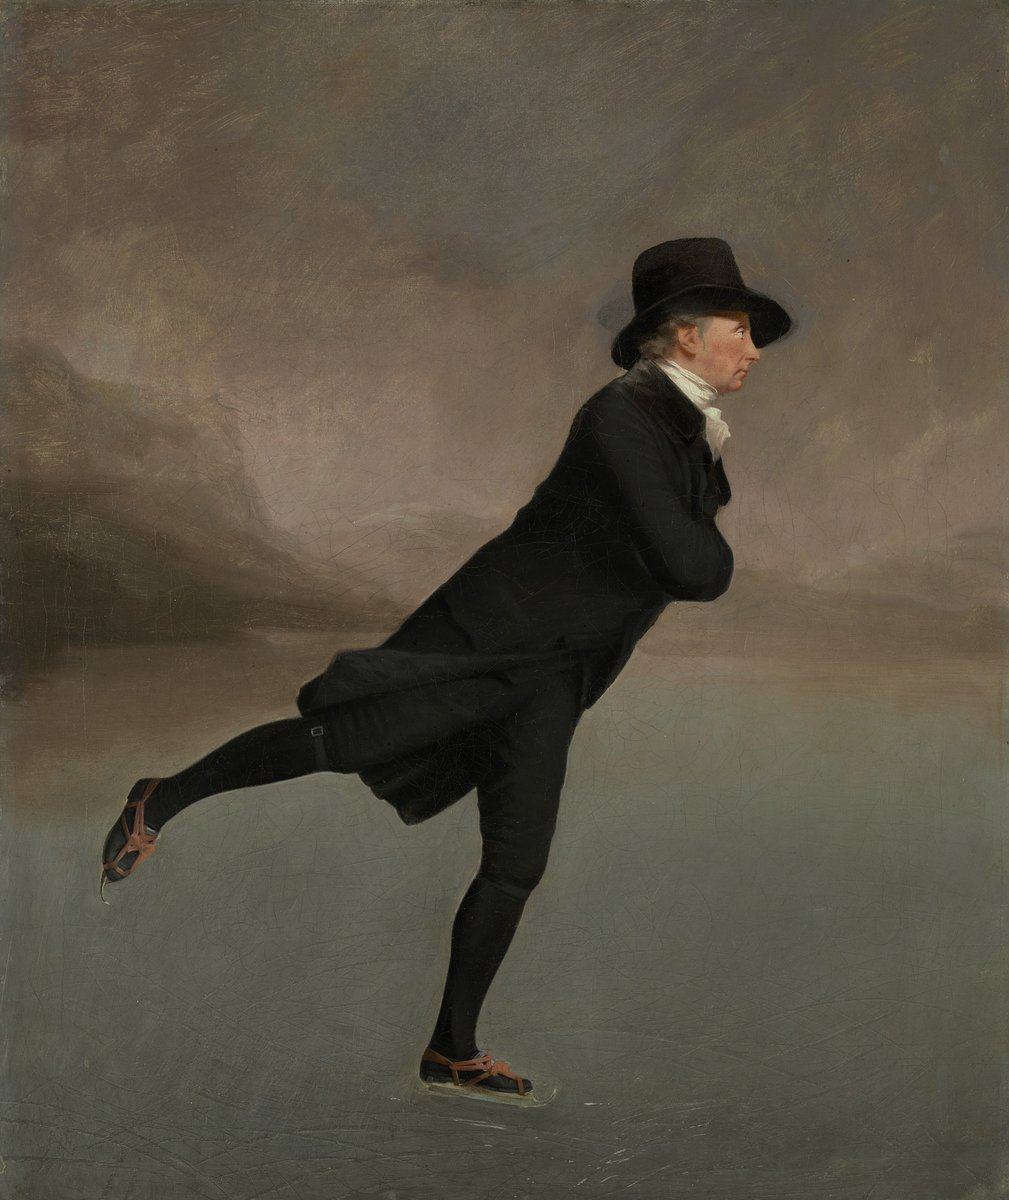 ❄️Winter Fun Week would be incomplete without Sir Henry Raeburn's iconic portrait of the Reverend Robert Walker. Oil on canvas, ca 1795, @NatGalleriesSco  Learn more here  #skating #menswear #winter #Scotland #fashion